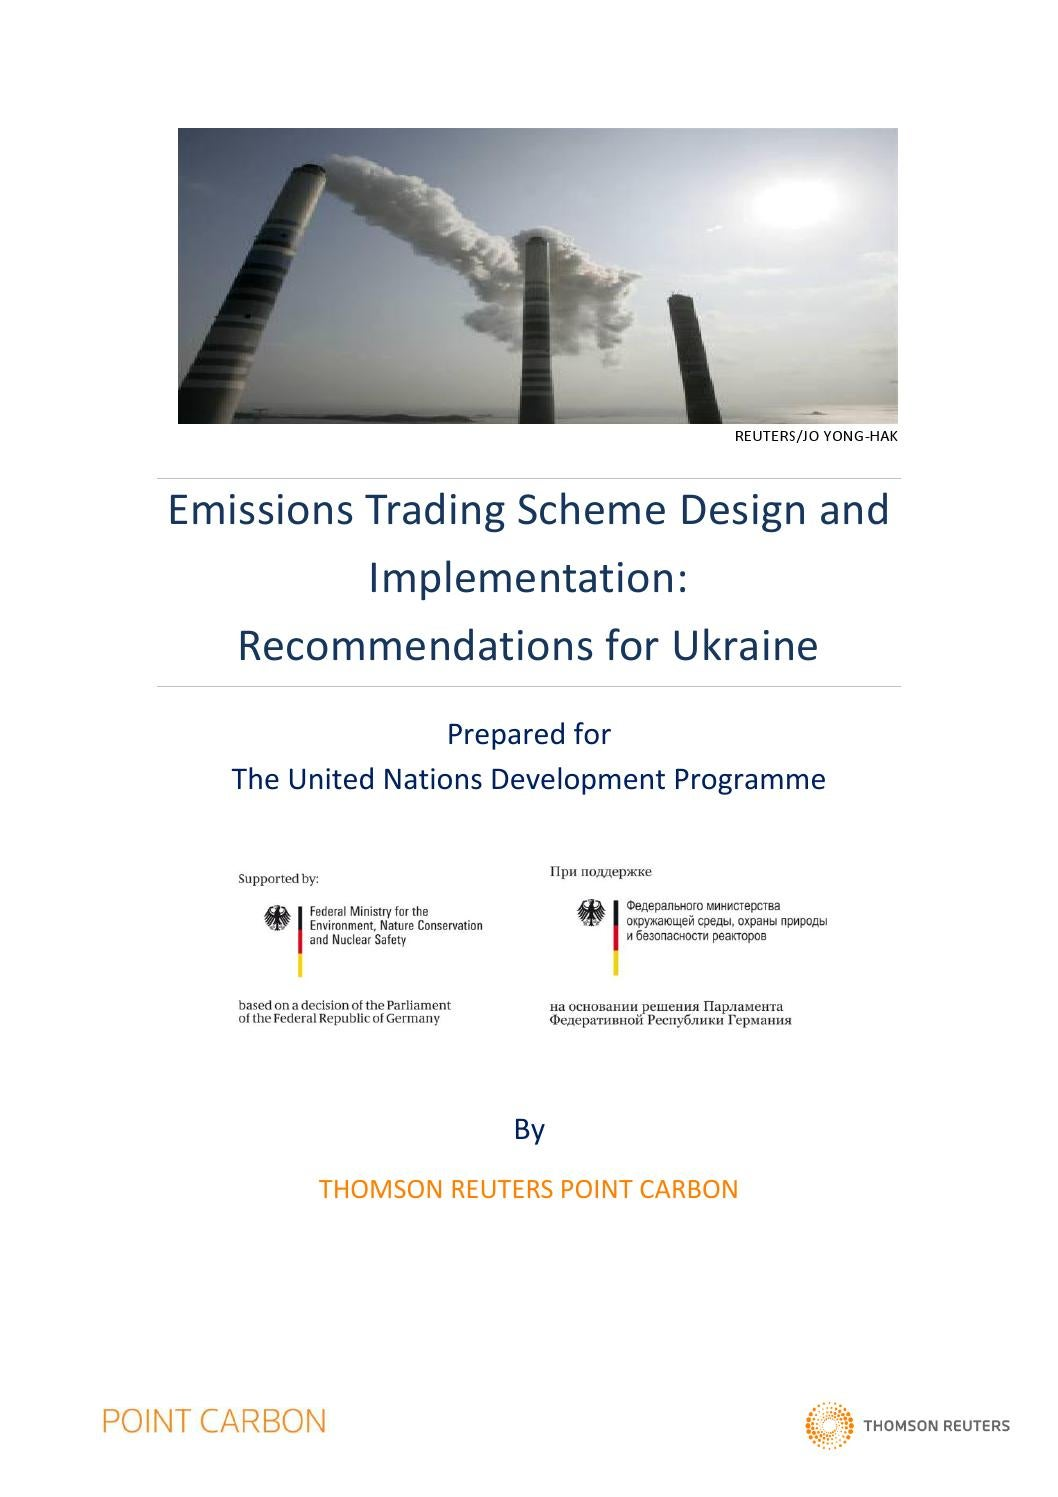 Emissions Trading Scheme design and implementation: Recommendations for  Ukraine